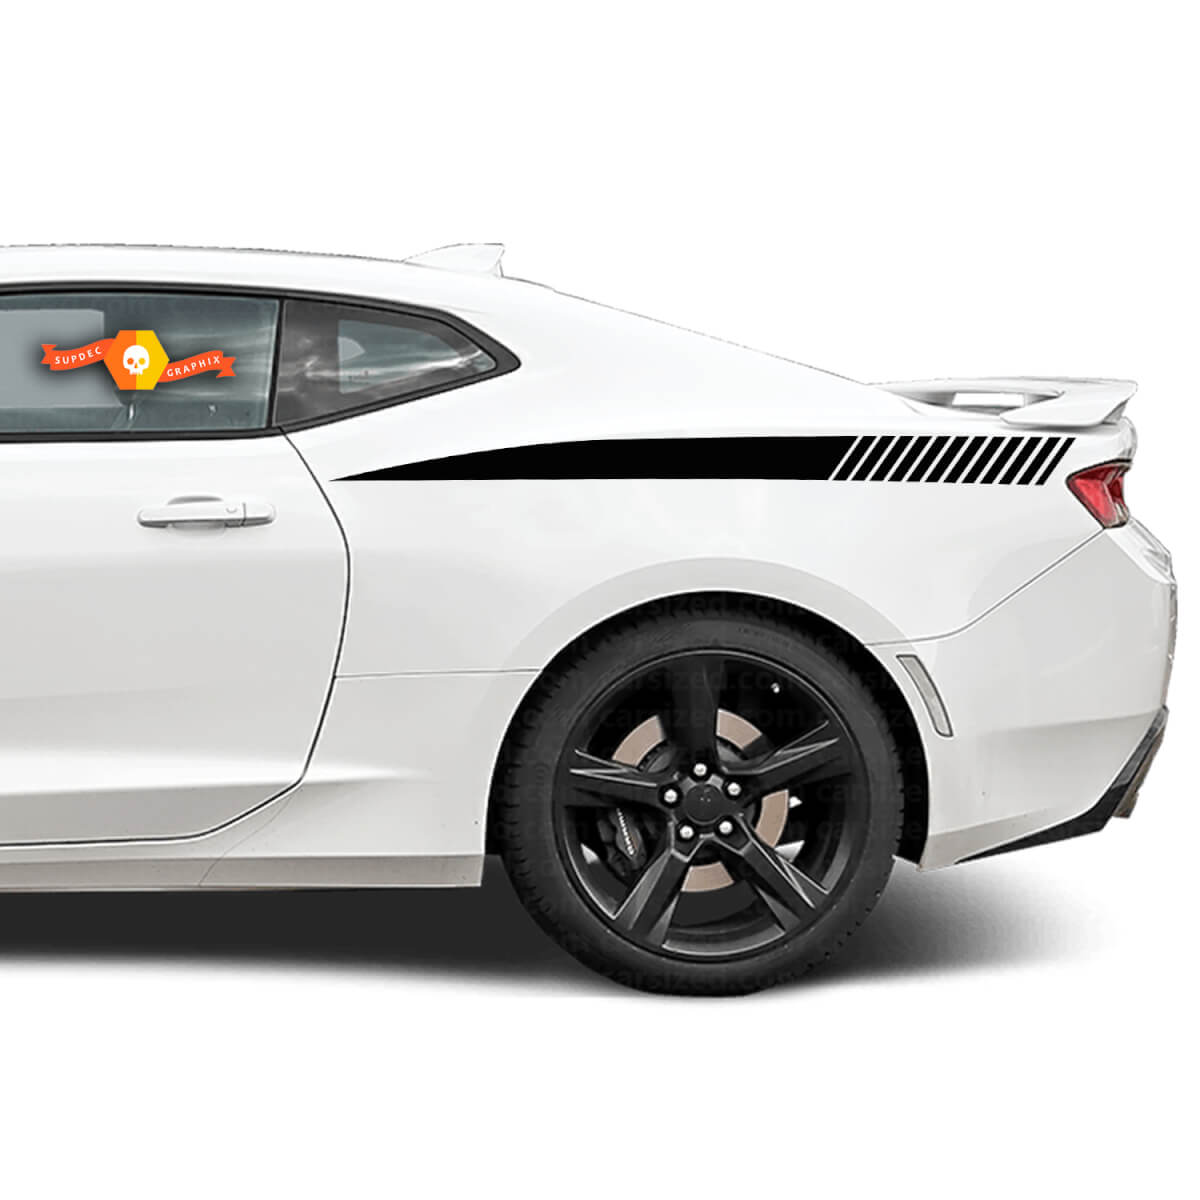 Chevrolet Camaro 2010-2020 Rear Quarter Side Accent Decal Stripes